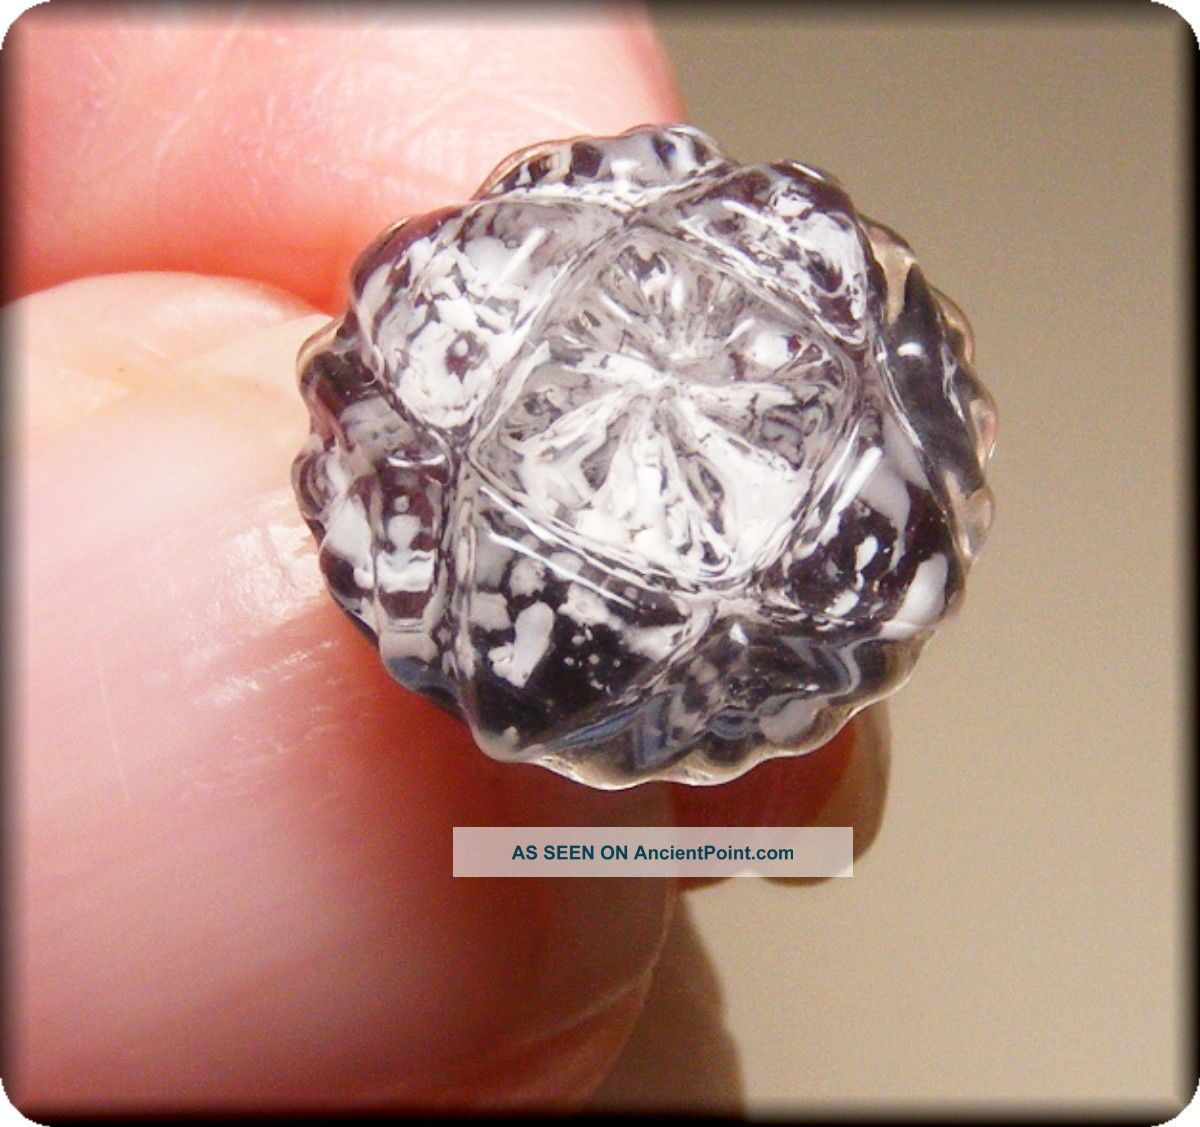 Rare Molded Crystal Glass Button W Purple Base W White Spots Center W Glass Cap Buttons photo